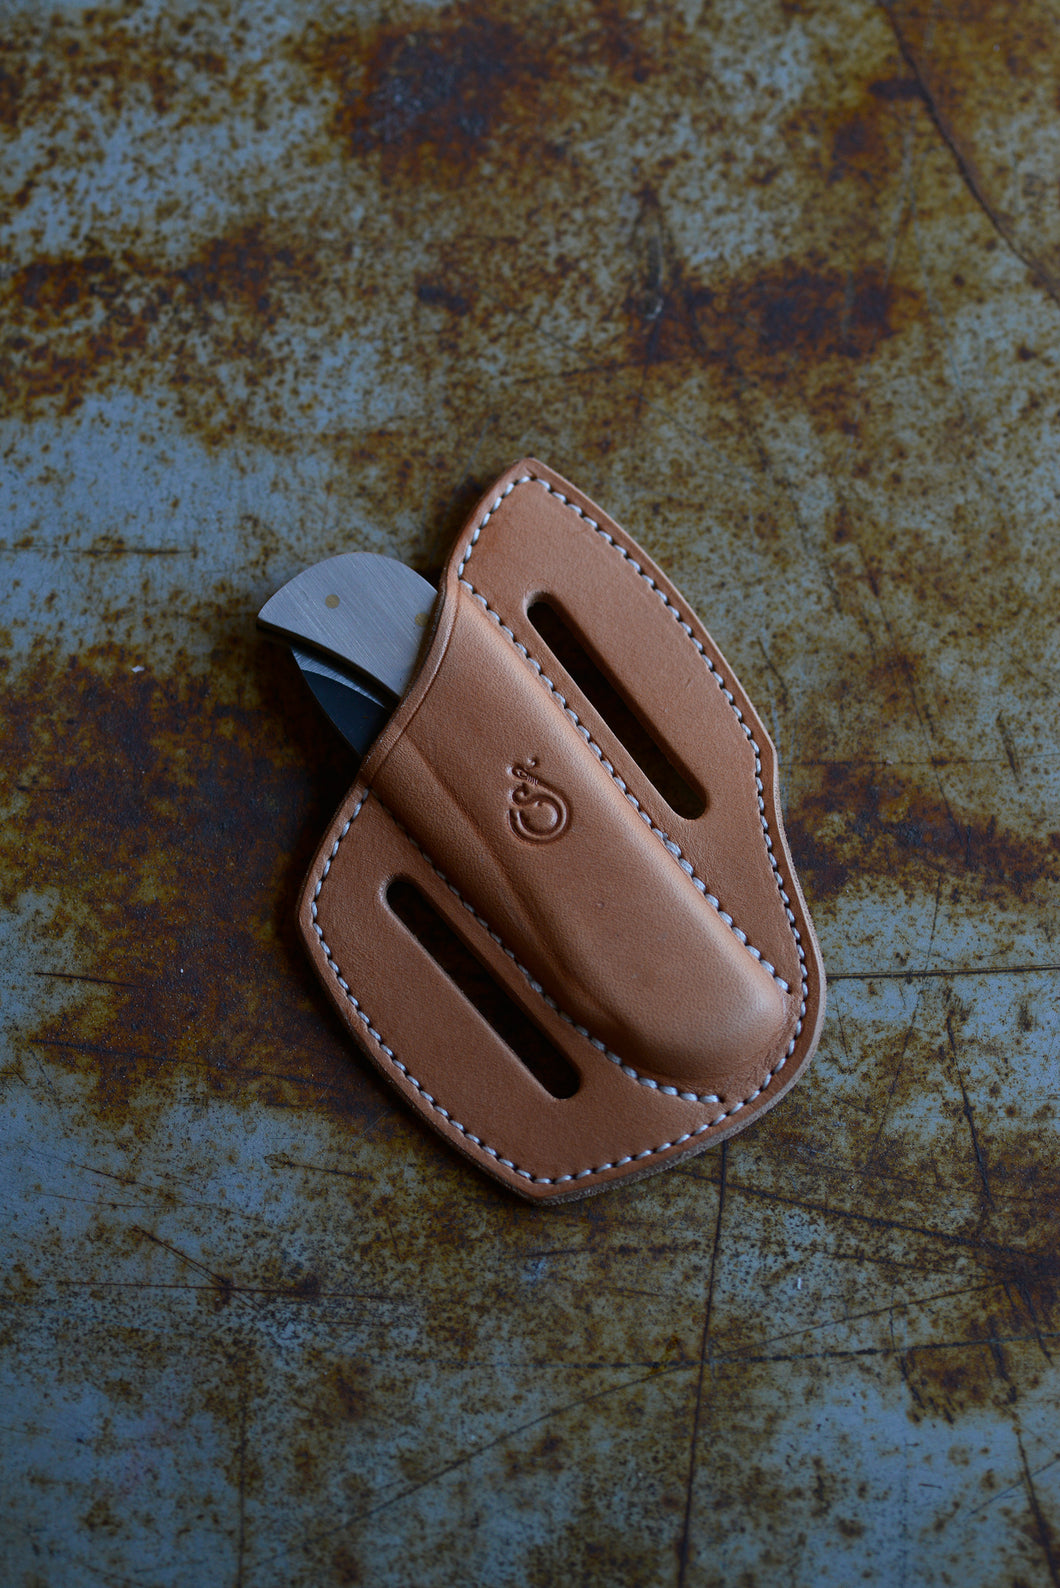 Erling Knives x Ship John Folder / Cross Draw Sheath - Aluminum